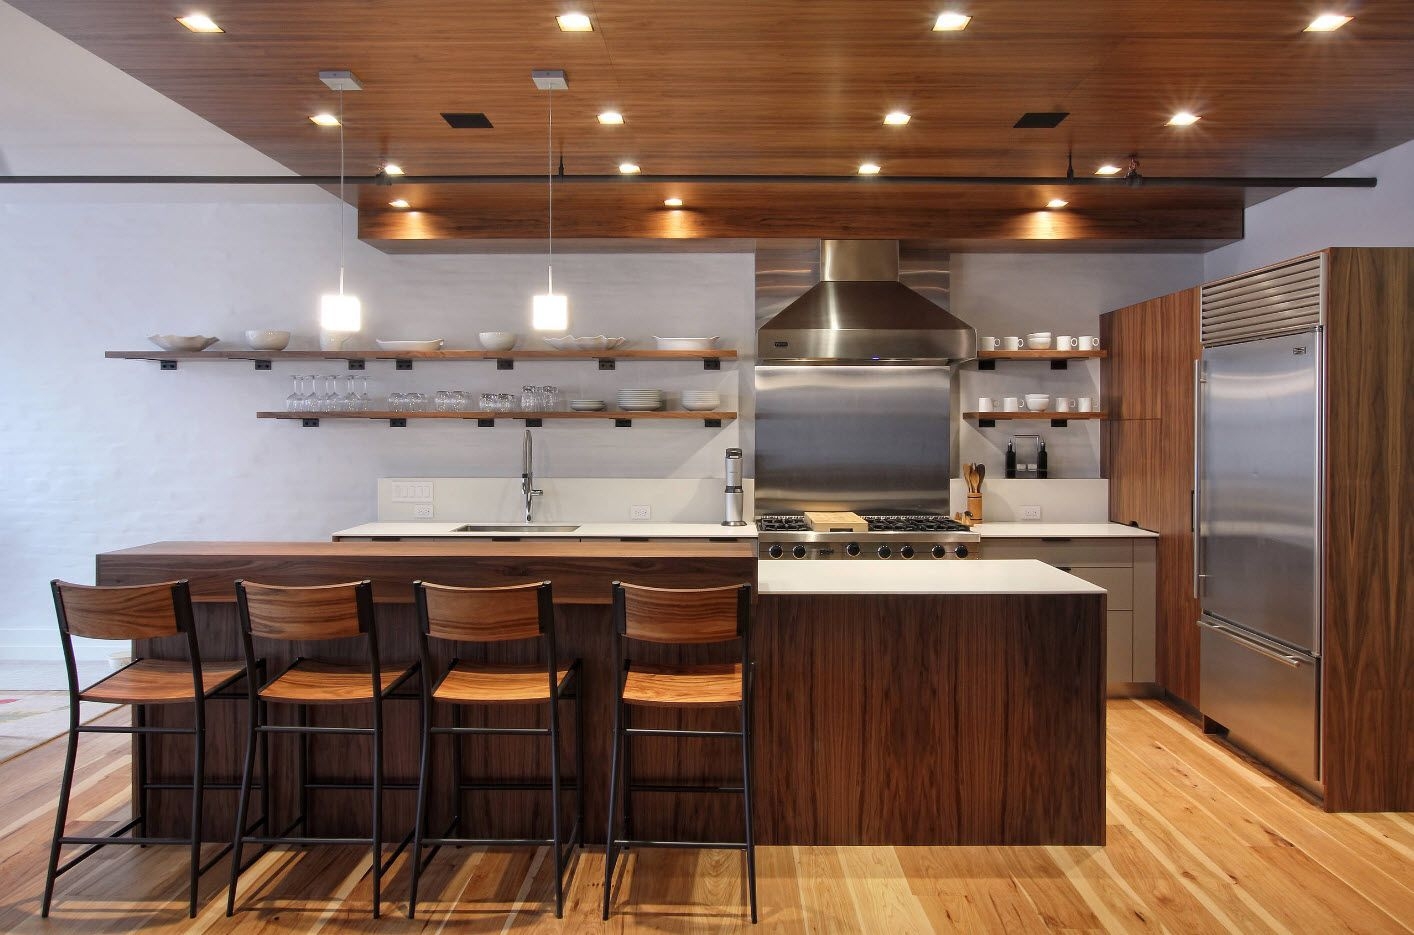 Wooden surfaces to fill up the space of large kitchen